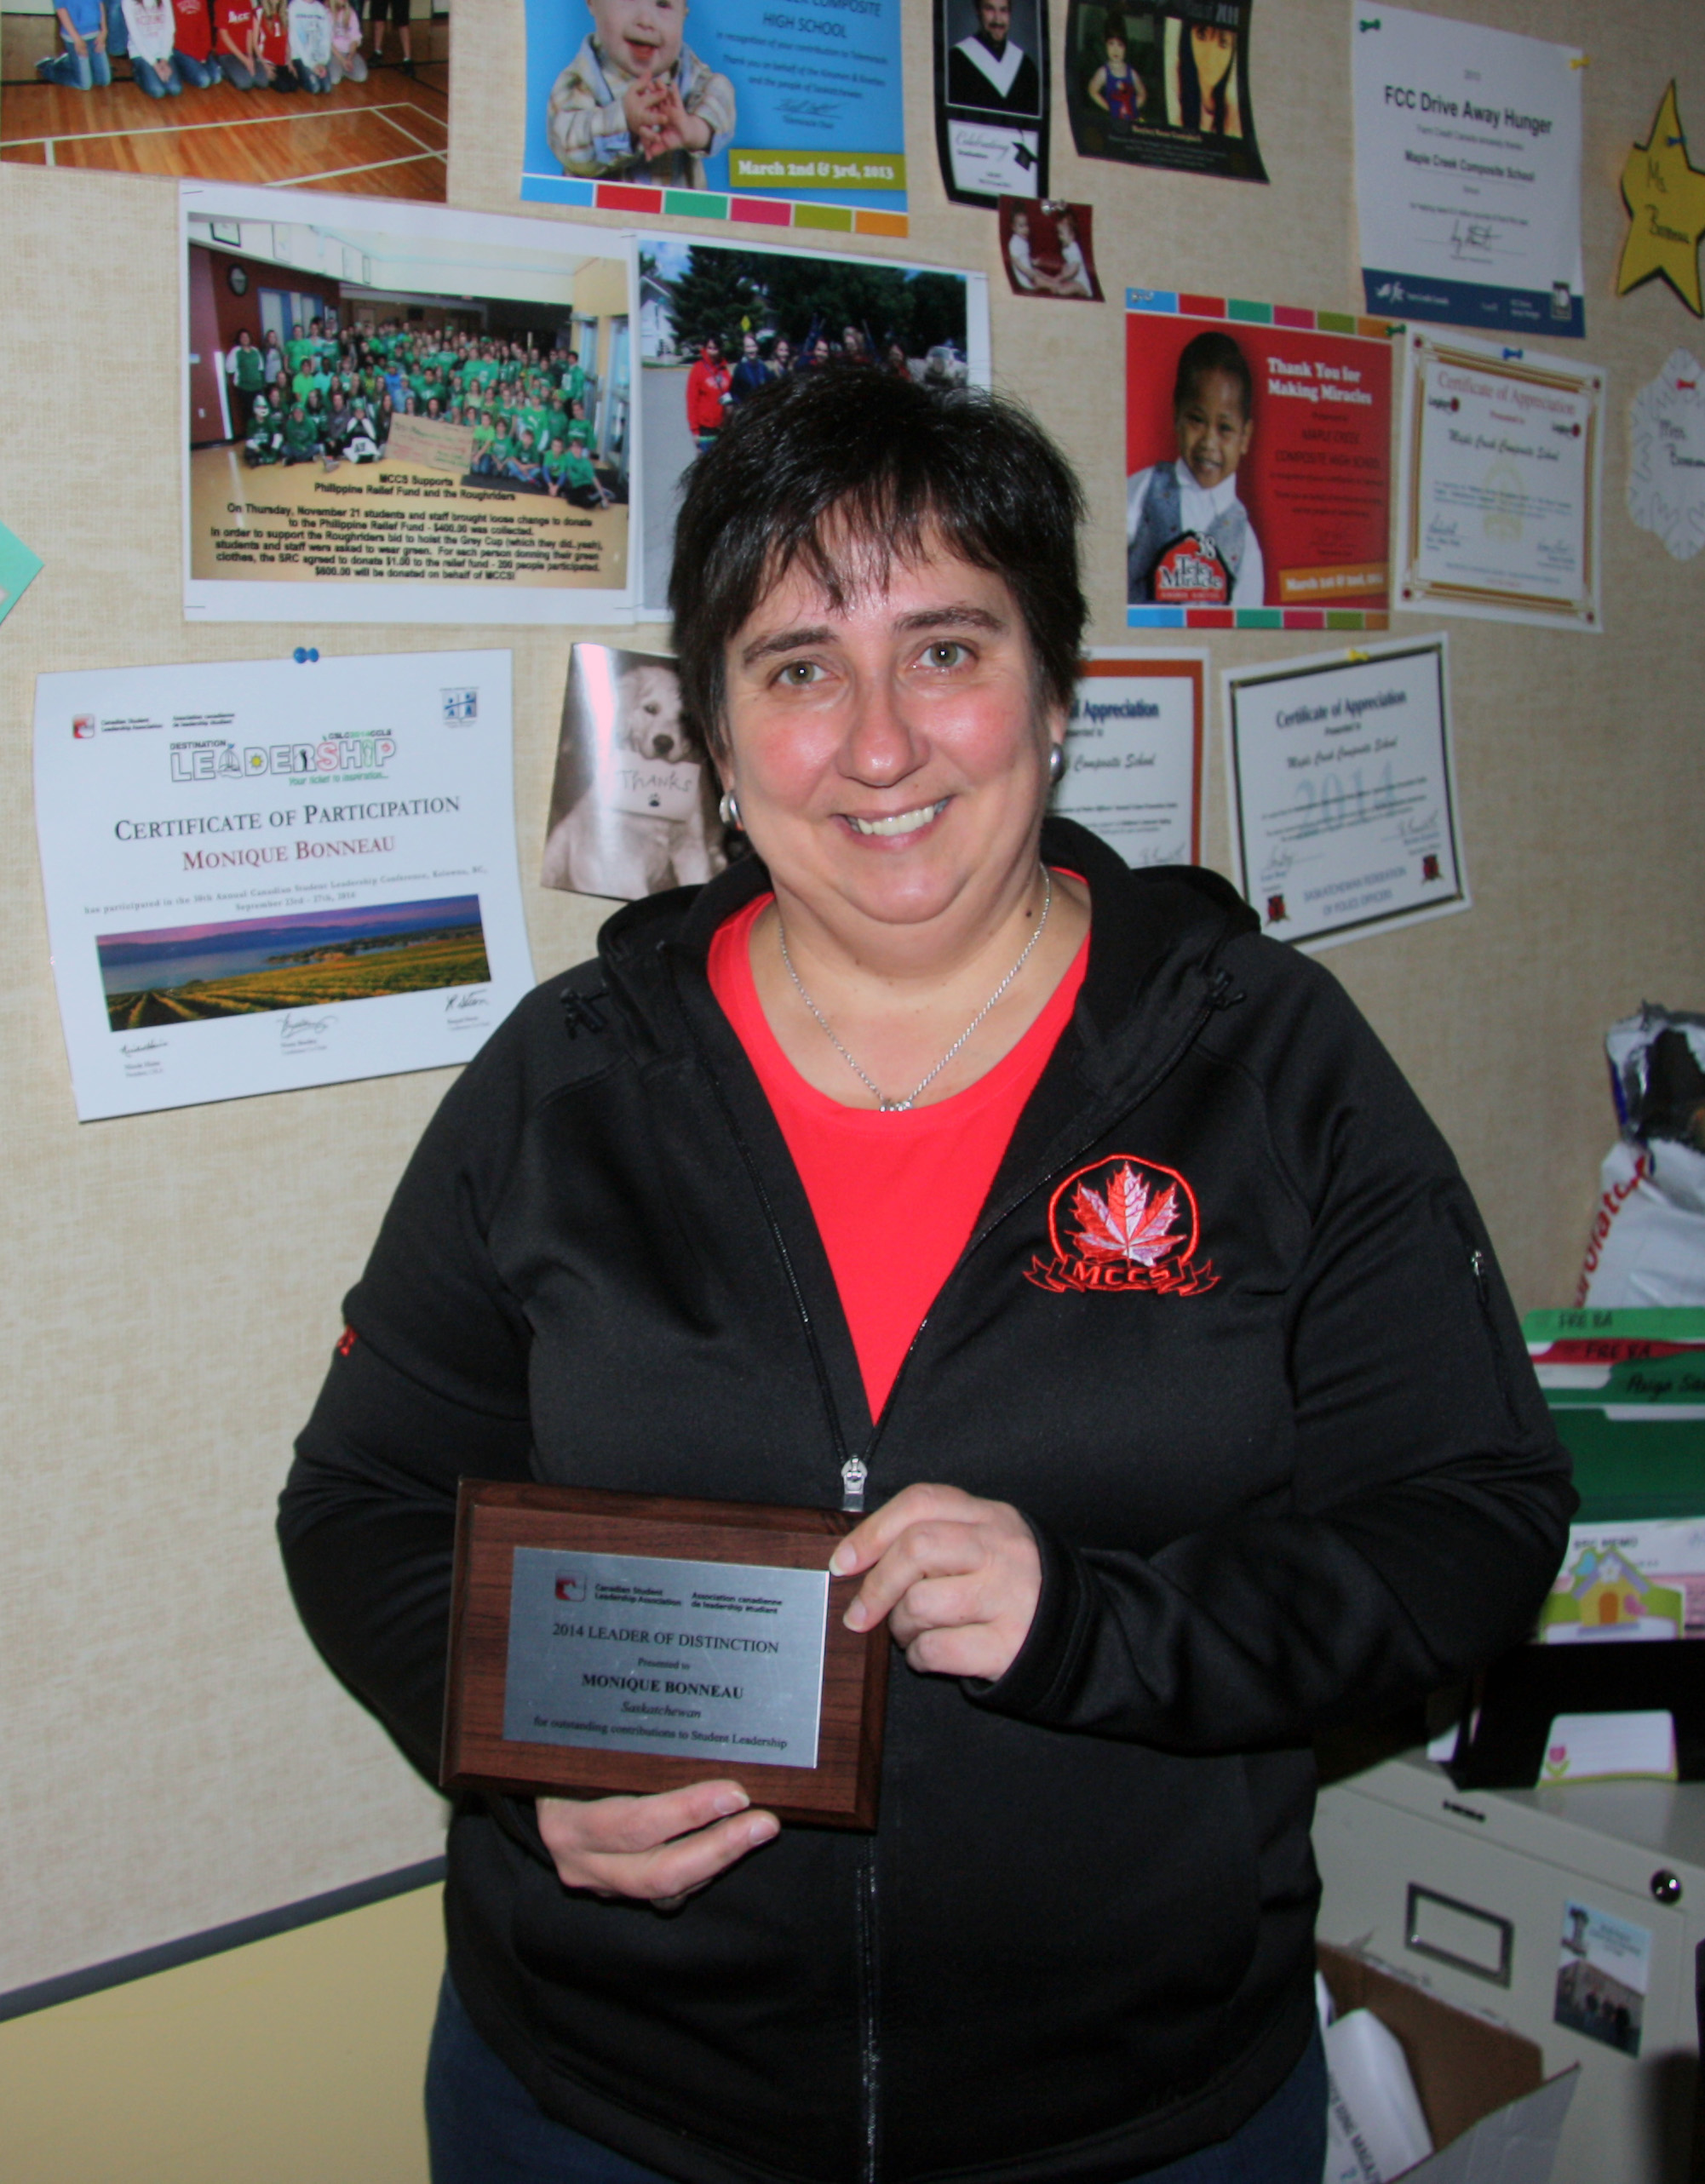 Monique%20Bonneau%20-%20Leader%20of%20Distinction%20Award.jpg